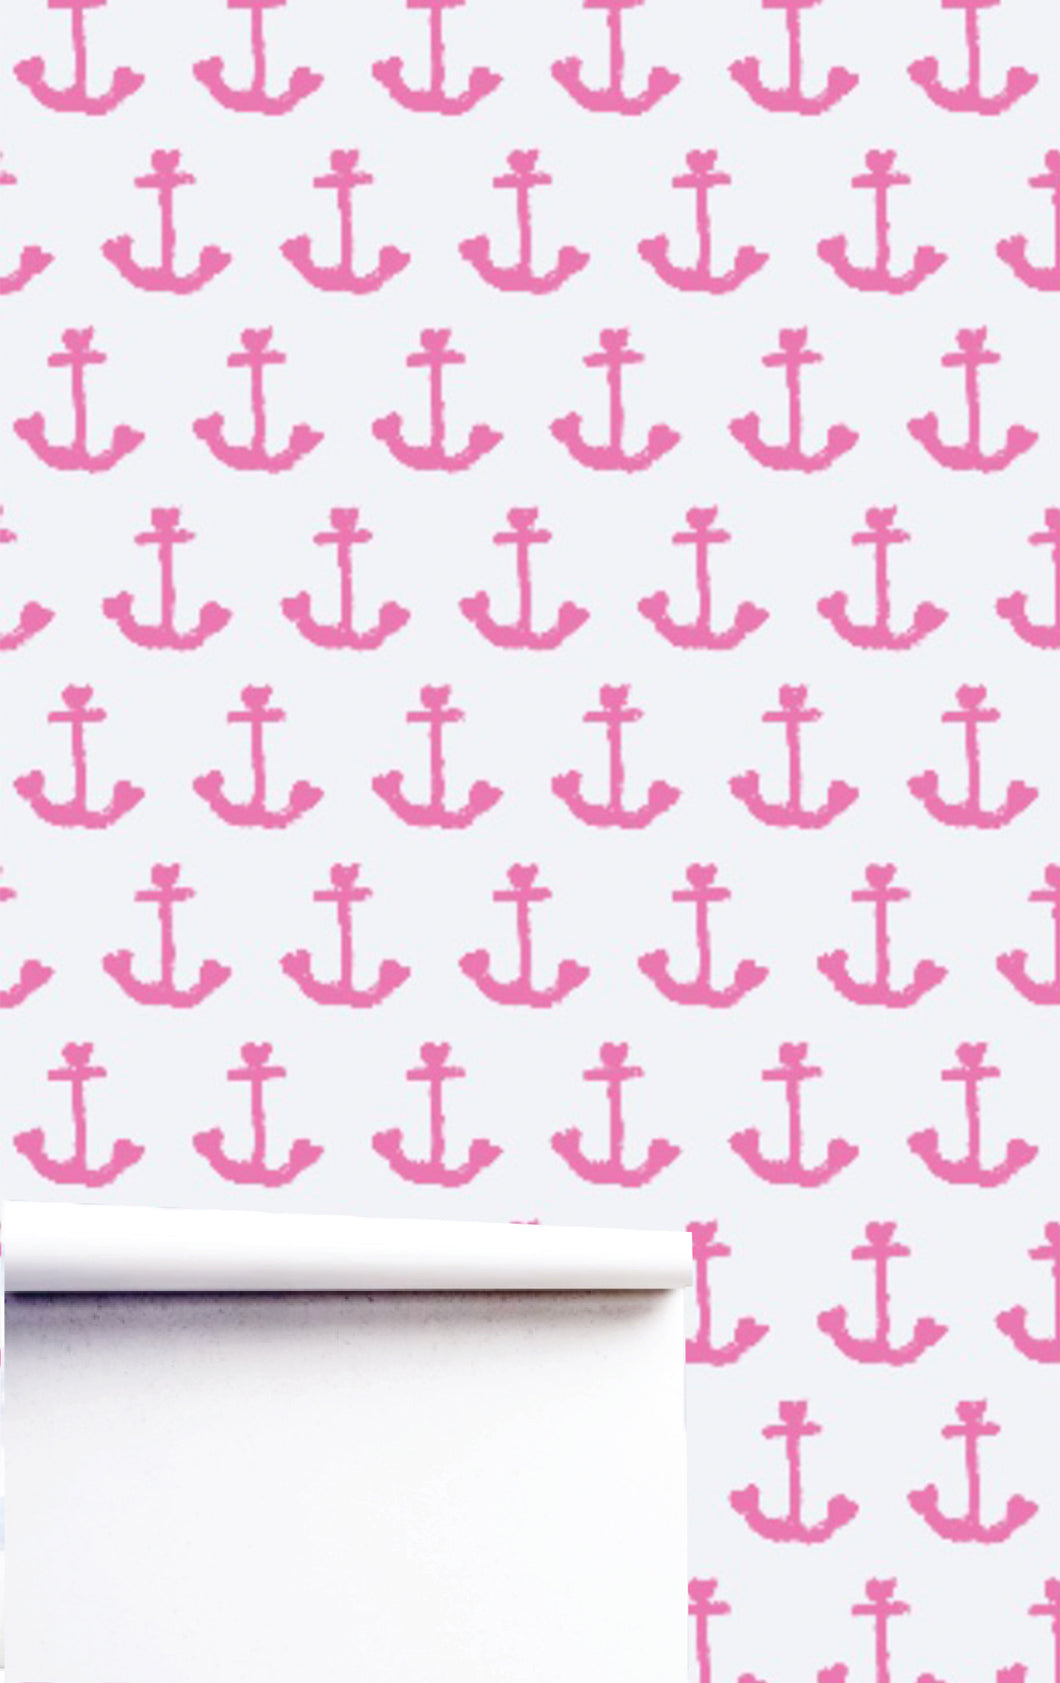 Ahoy Matey Bubblegum Wallpaper